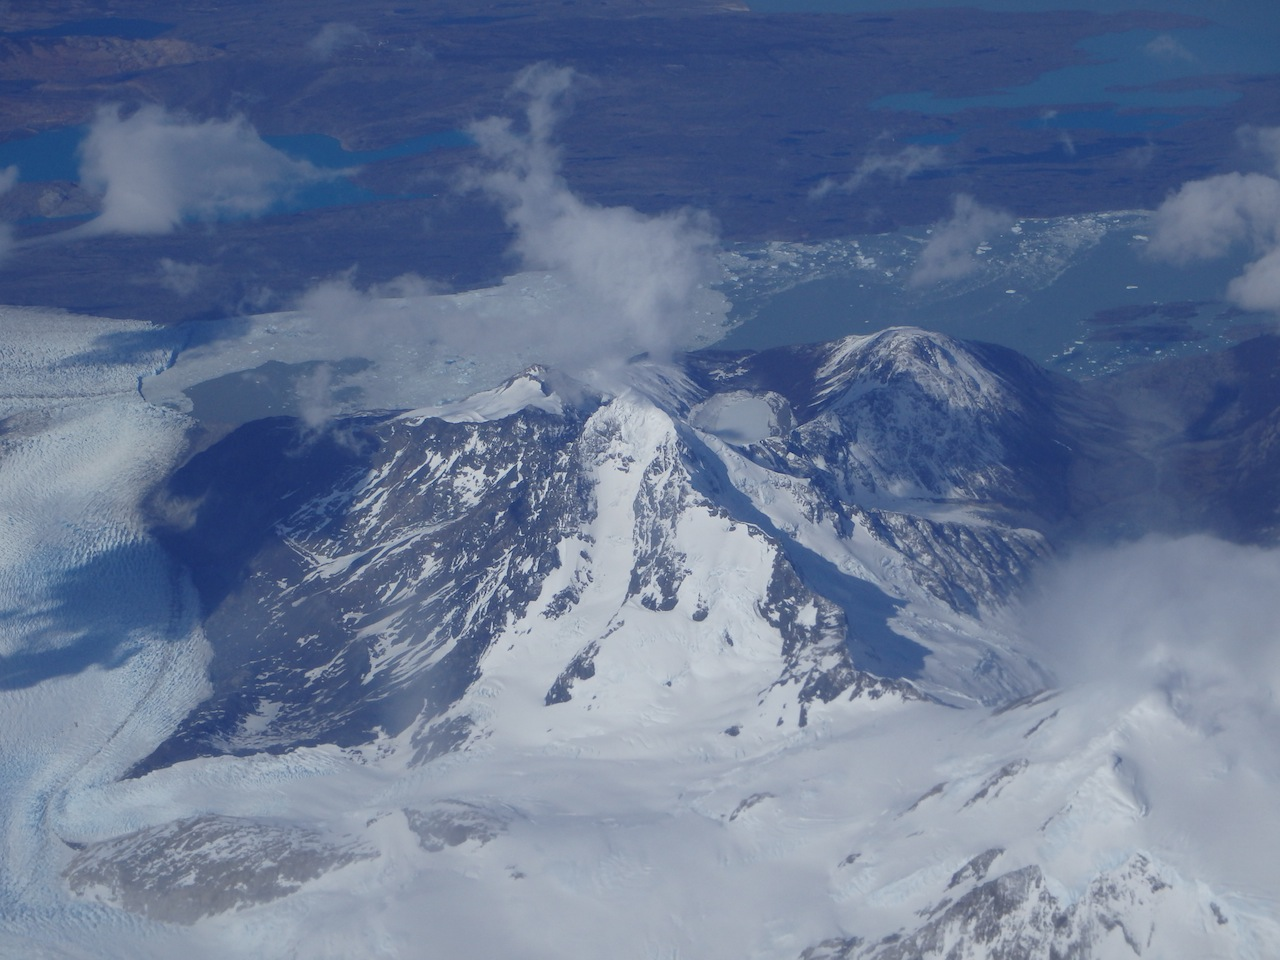 The view from the plane to Punta Arenas. Courtesy Austin Melillo.